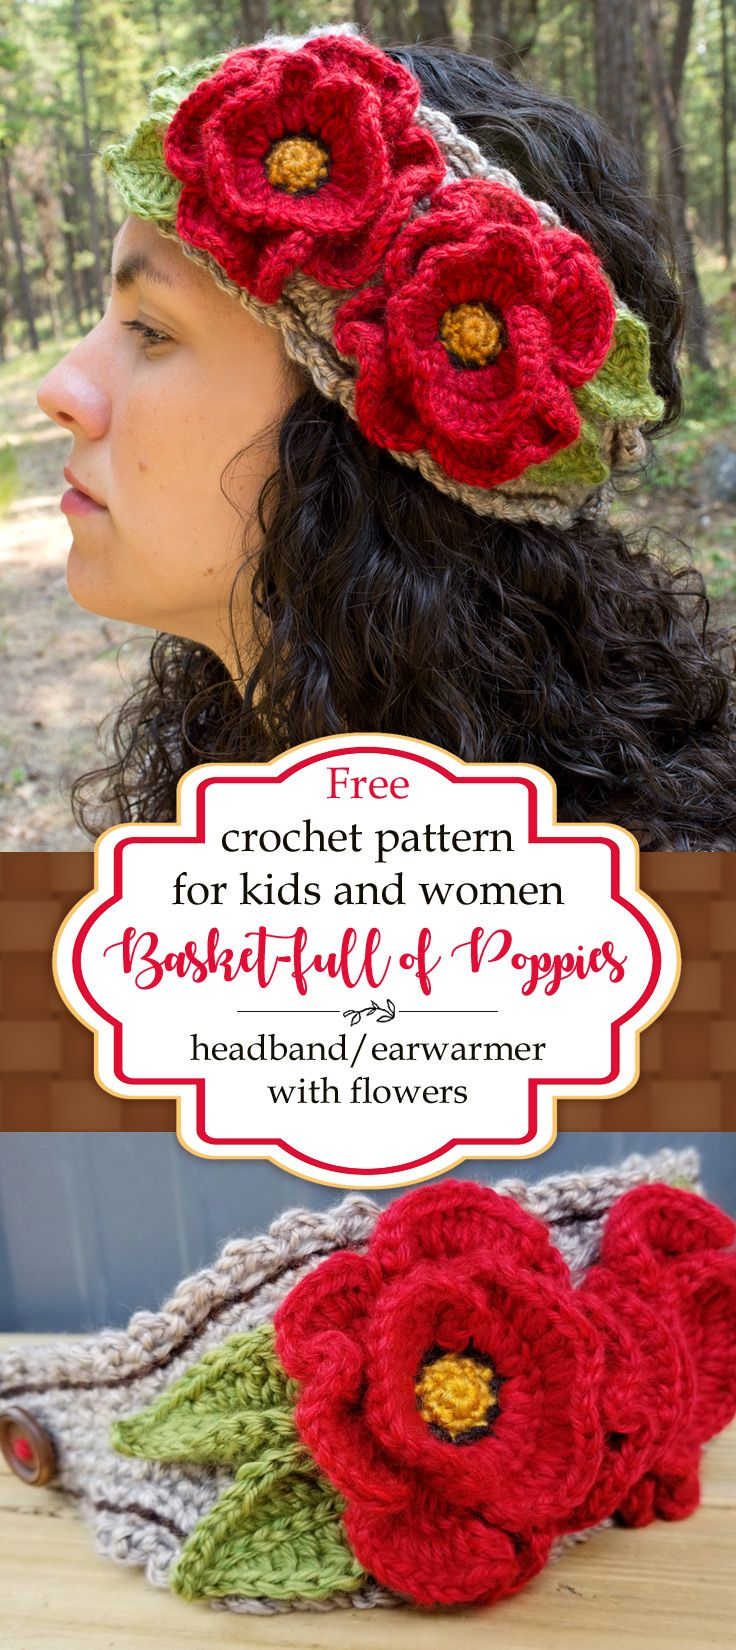 Follow this free crochet pattern and diy a beautiful headband or follow this free crochet pattern and diy a beautiful headband or earwarmer with flowers to mightylinksfo Choice Image